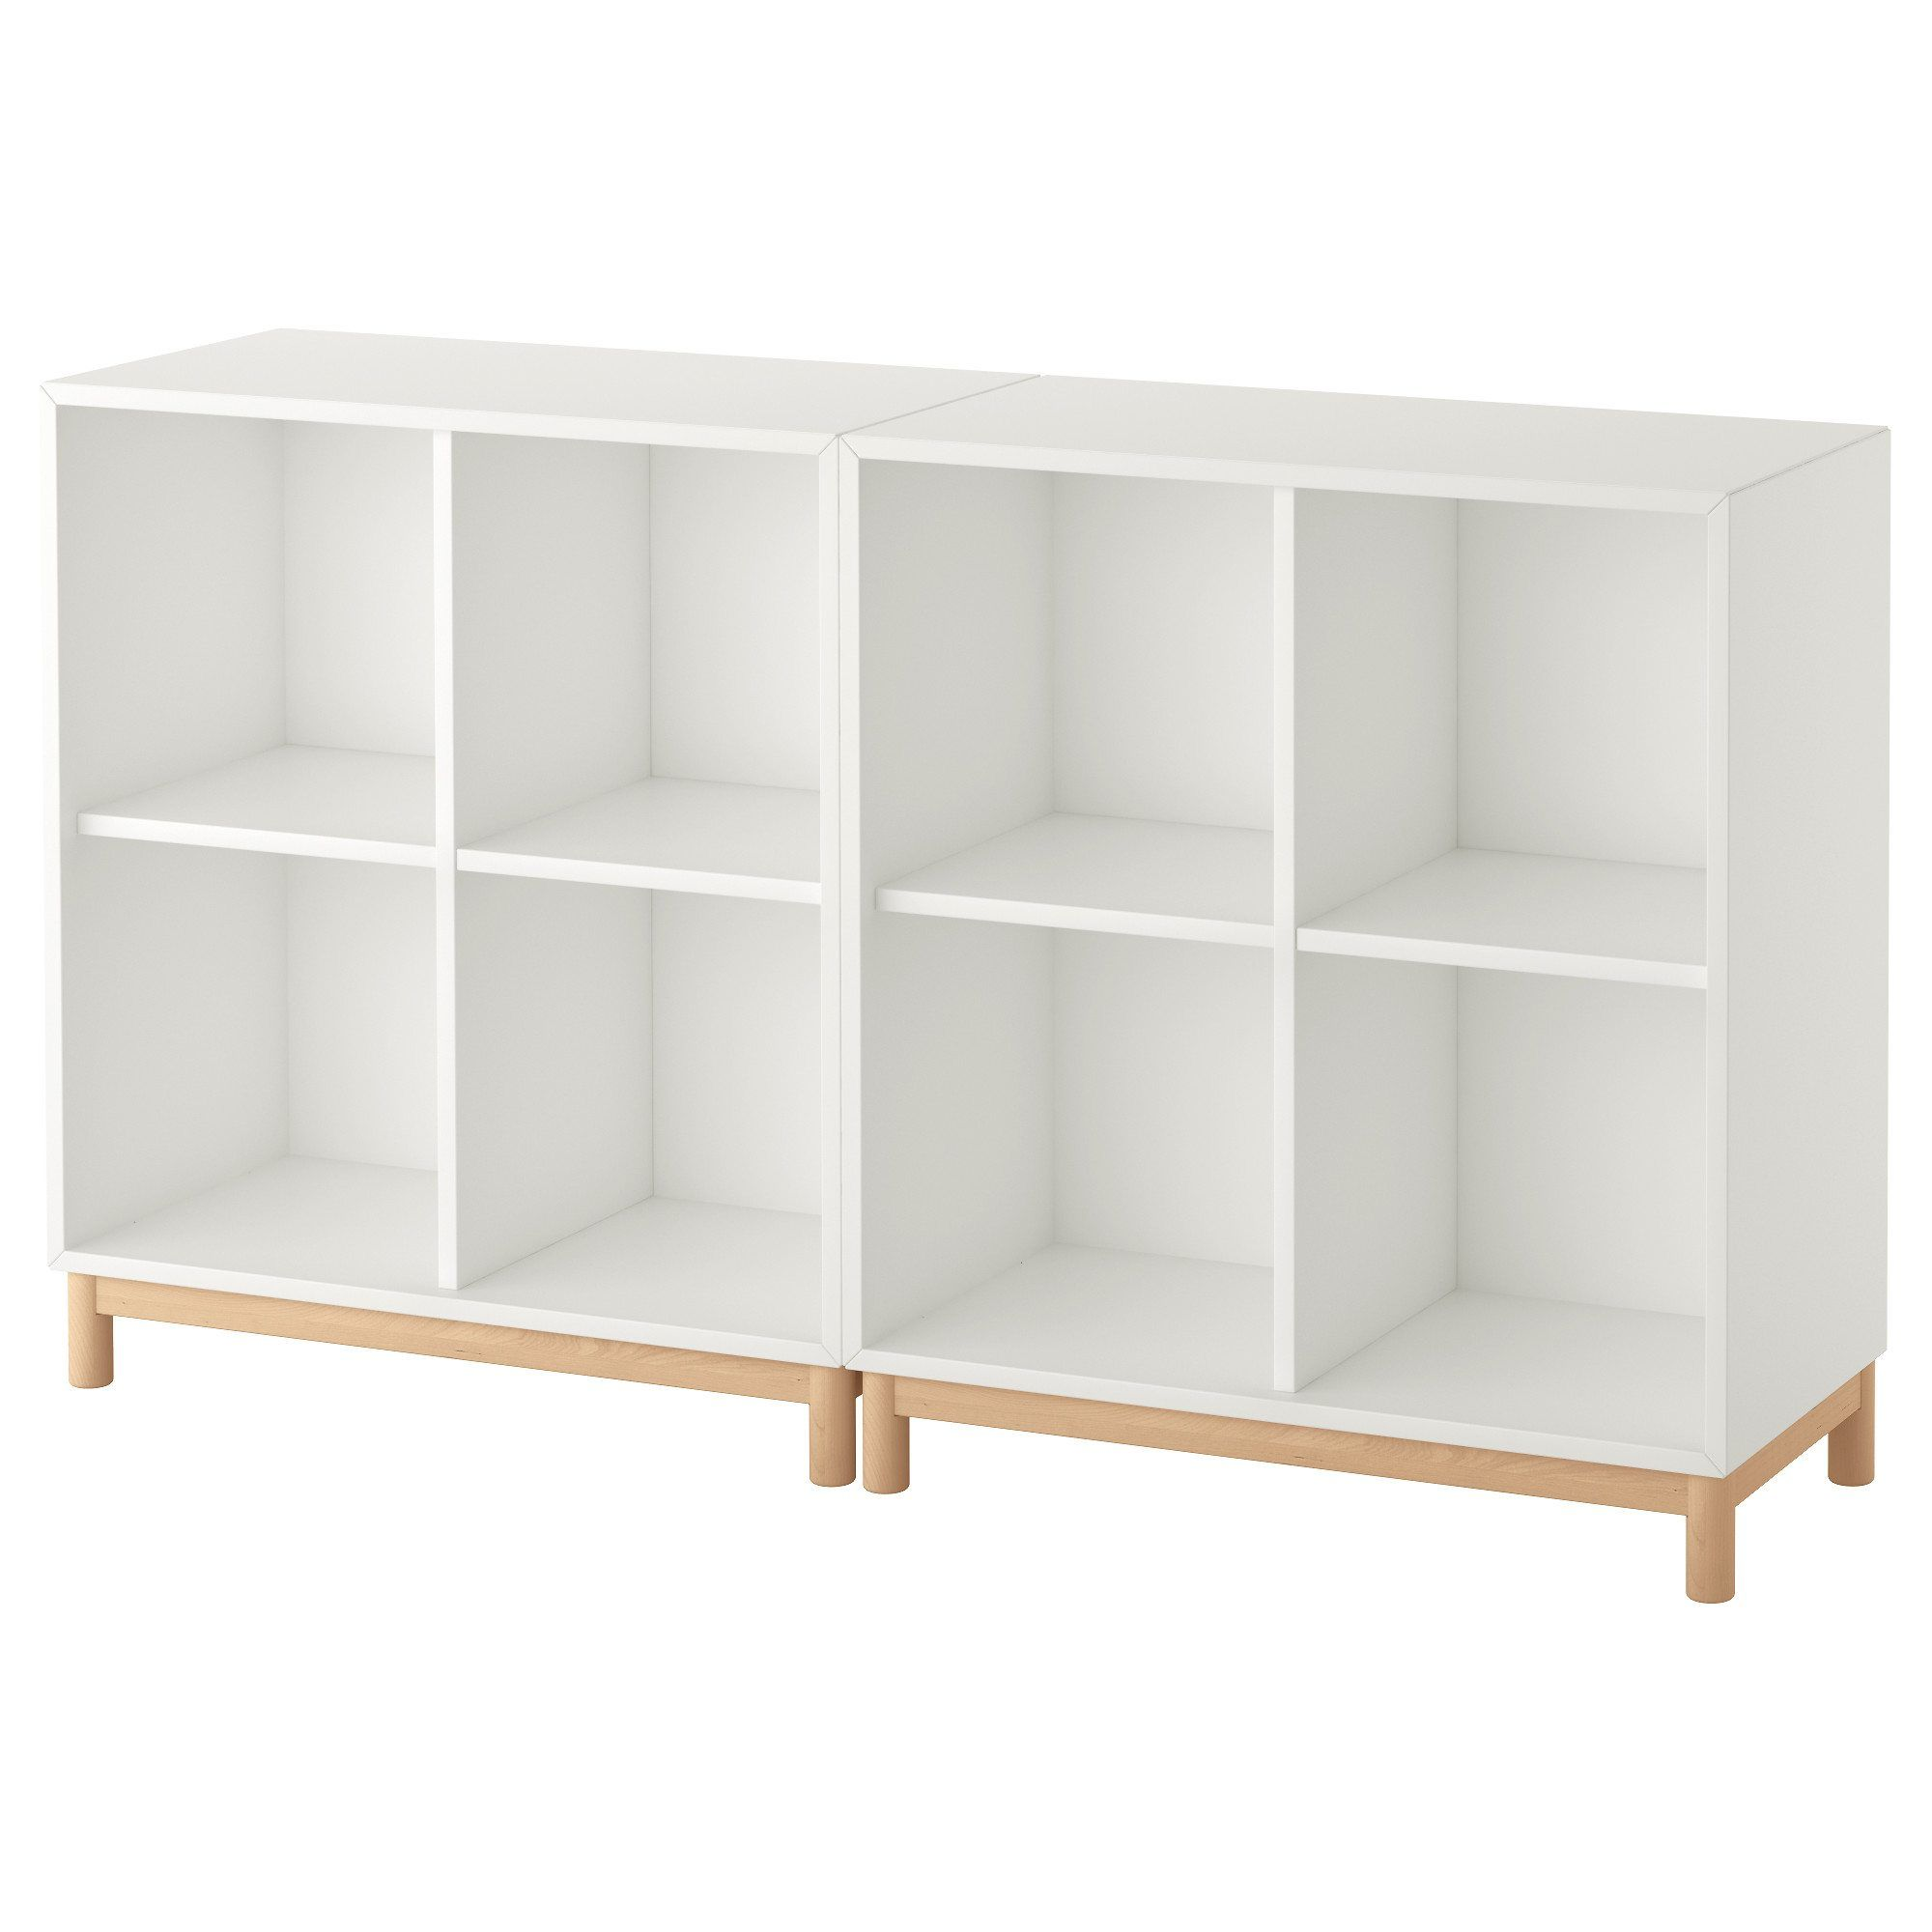 units your black brown wood storage white of plain decoration unit for jpg nits ikea shelf picture lofty kallax shelving incredible ideas favorable home